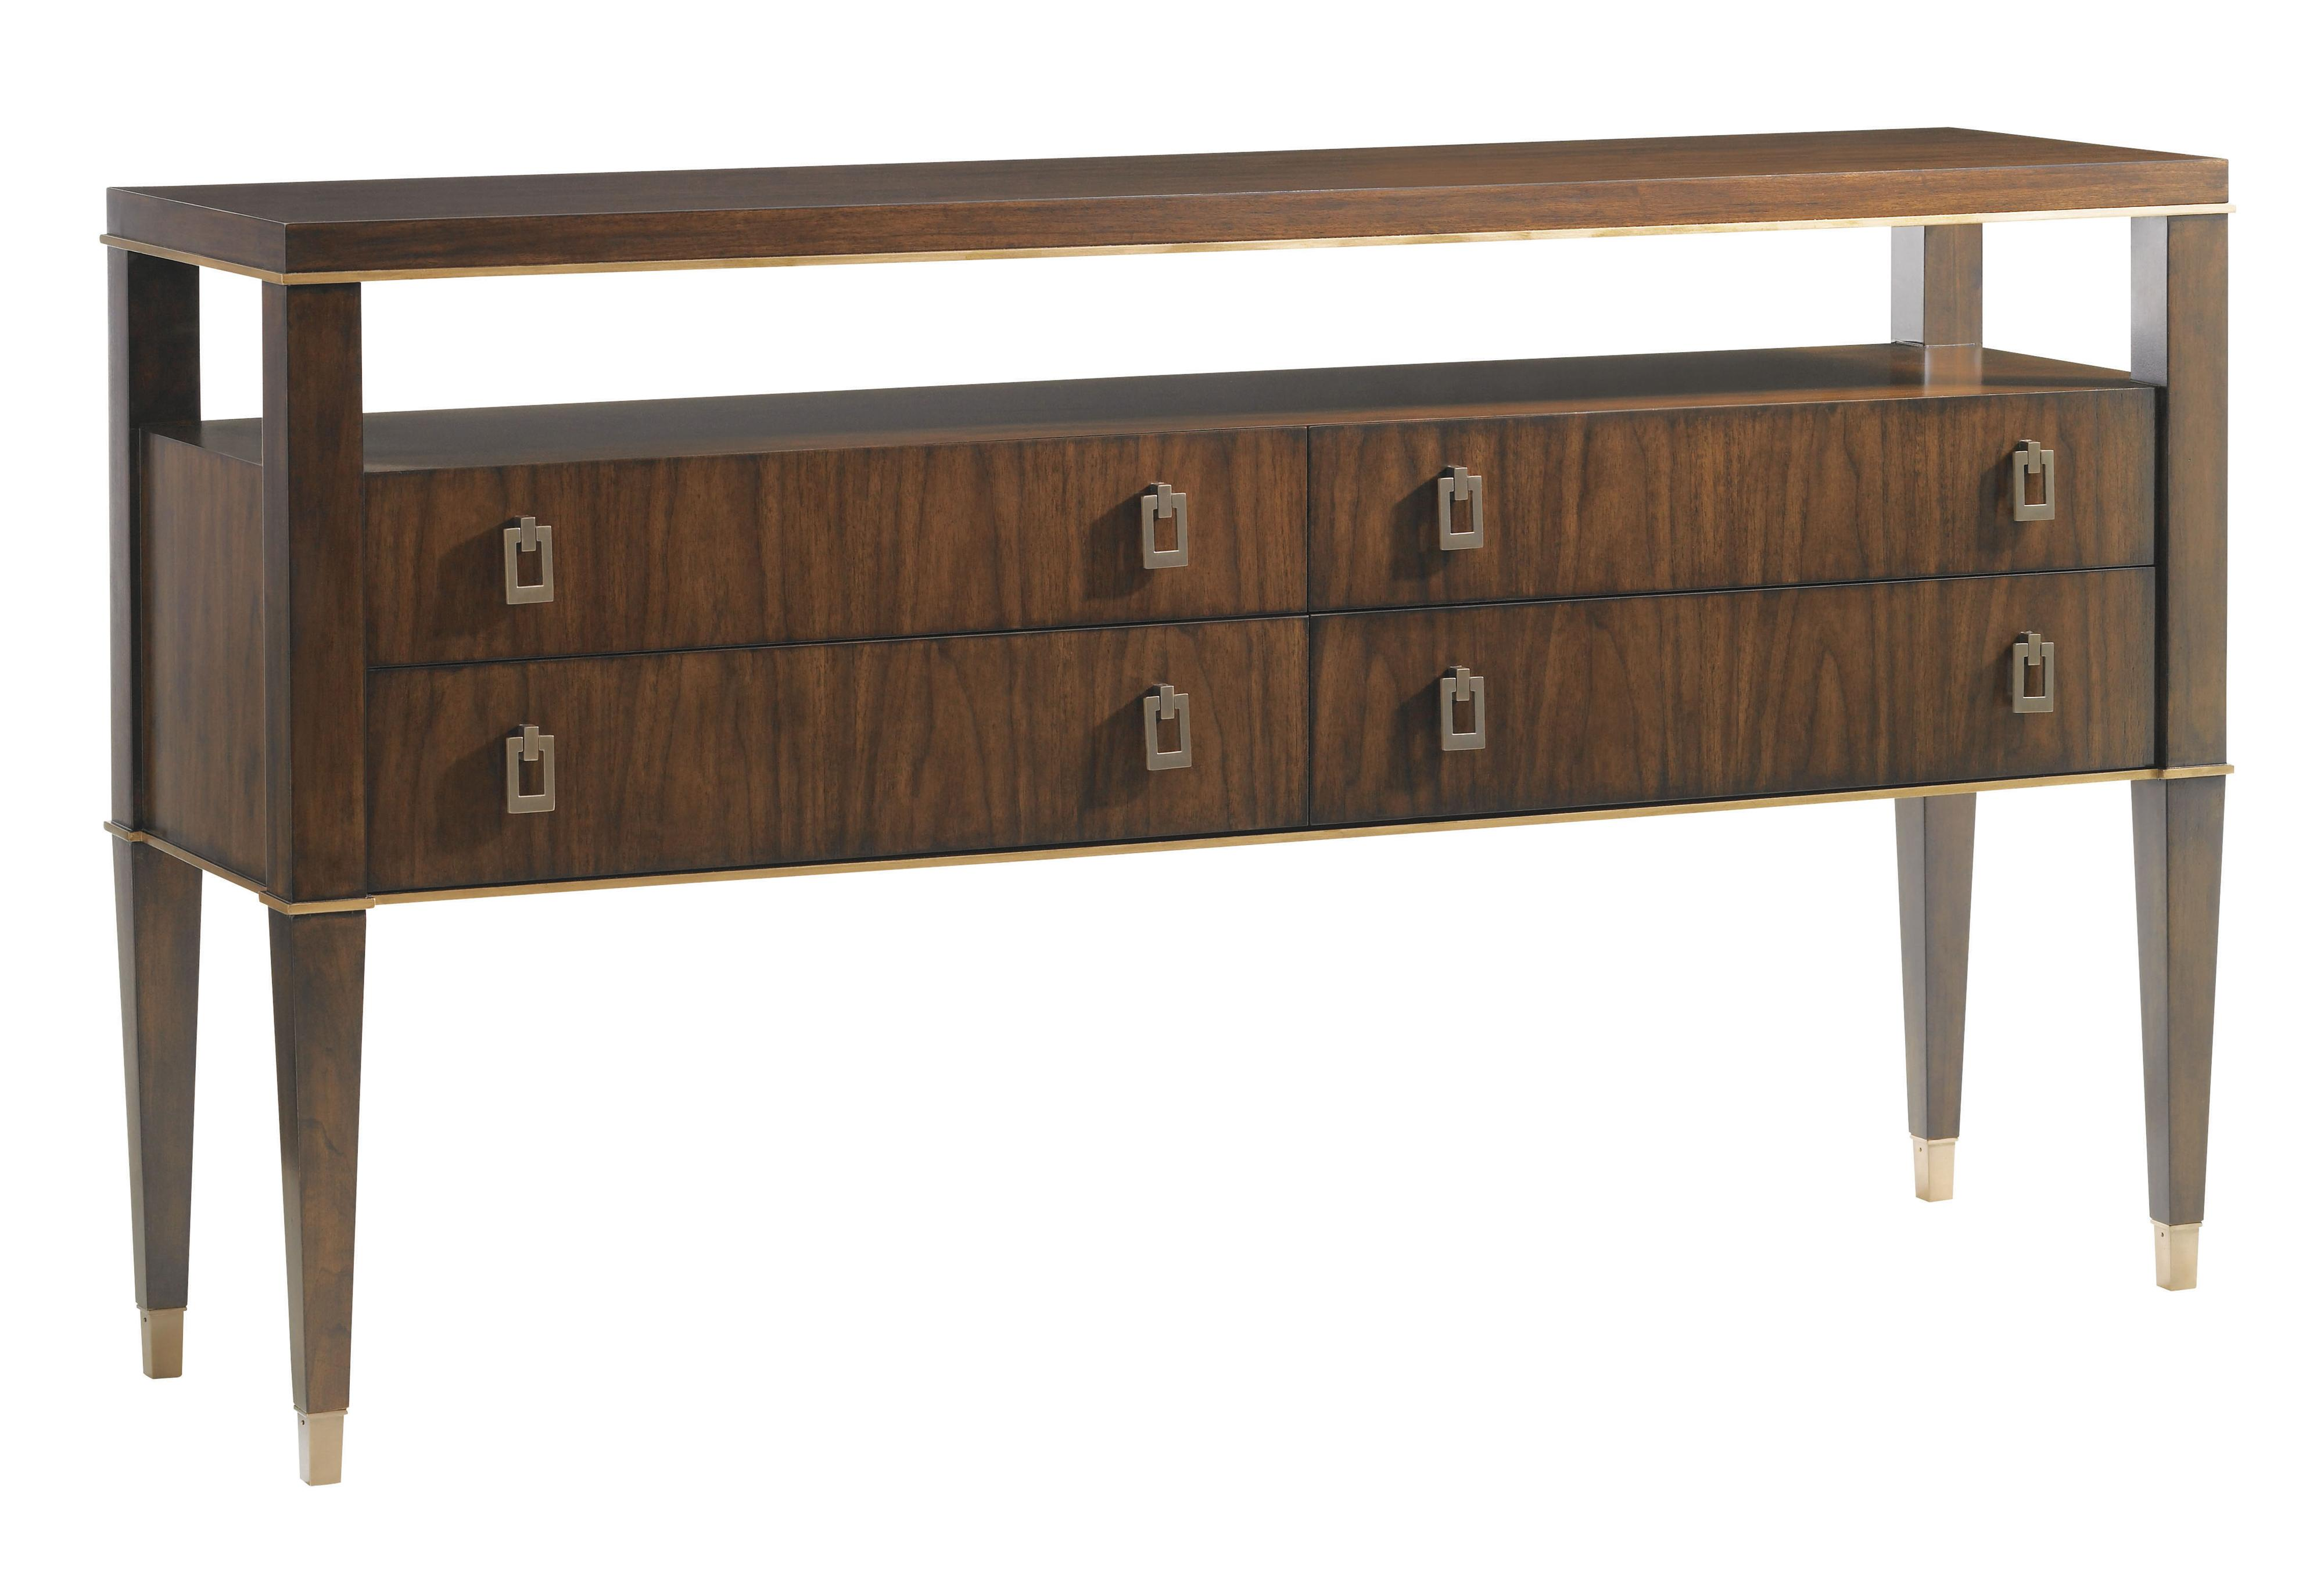 Lexington Tower Place 706 869 Lake Shore Sideboard With Open Storage And Felt Lined Silverware